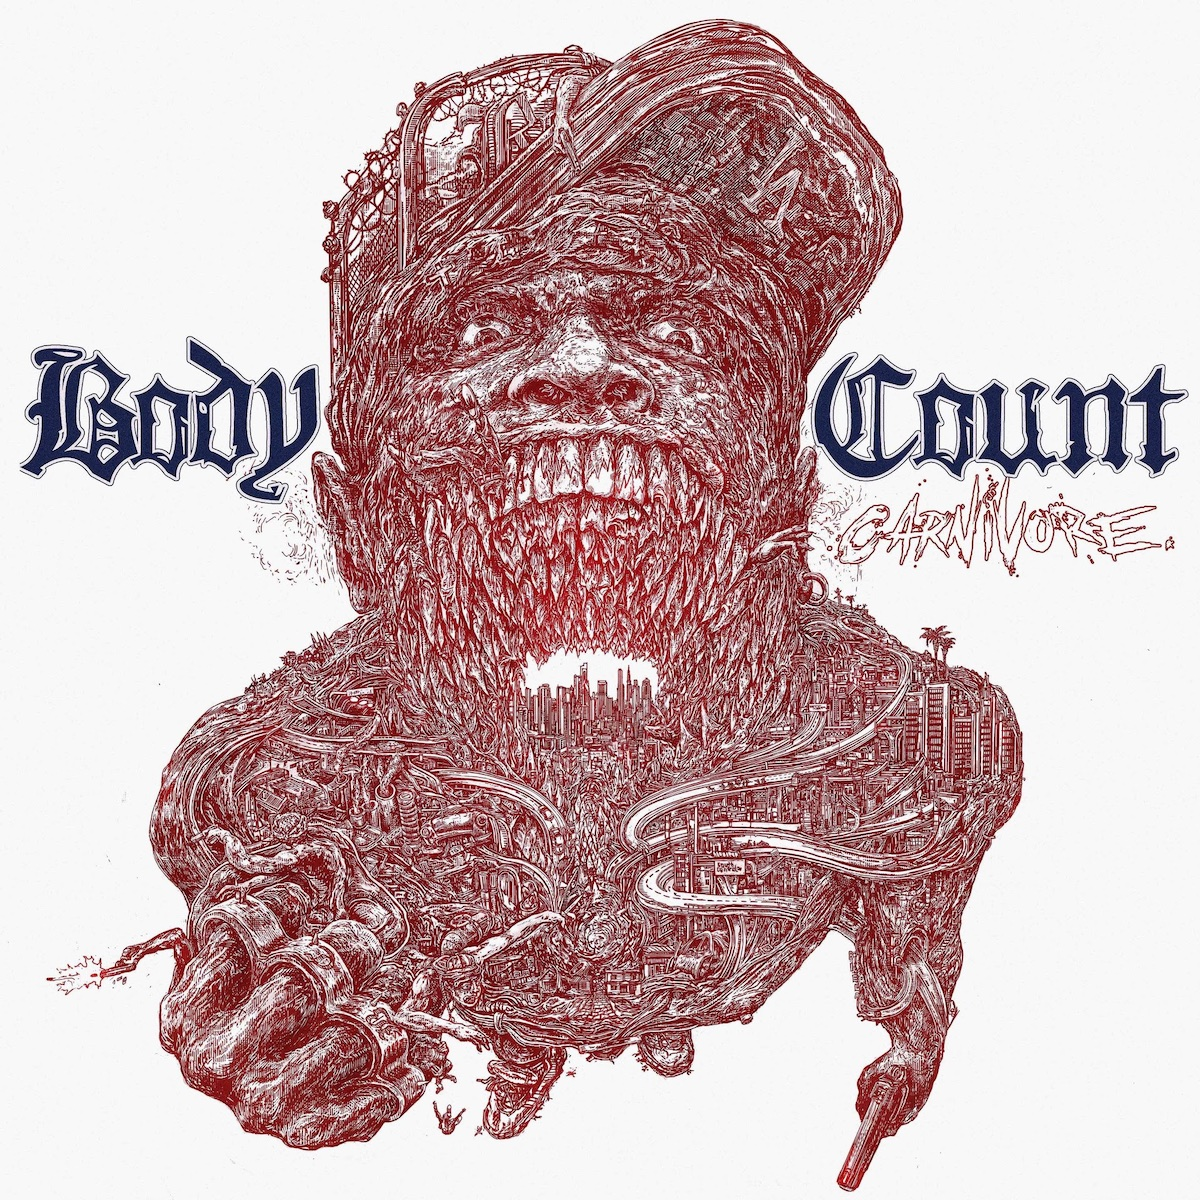 Image result for body count carnivore